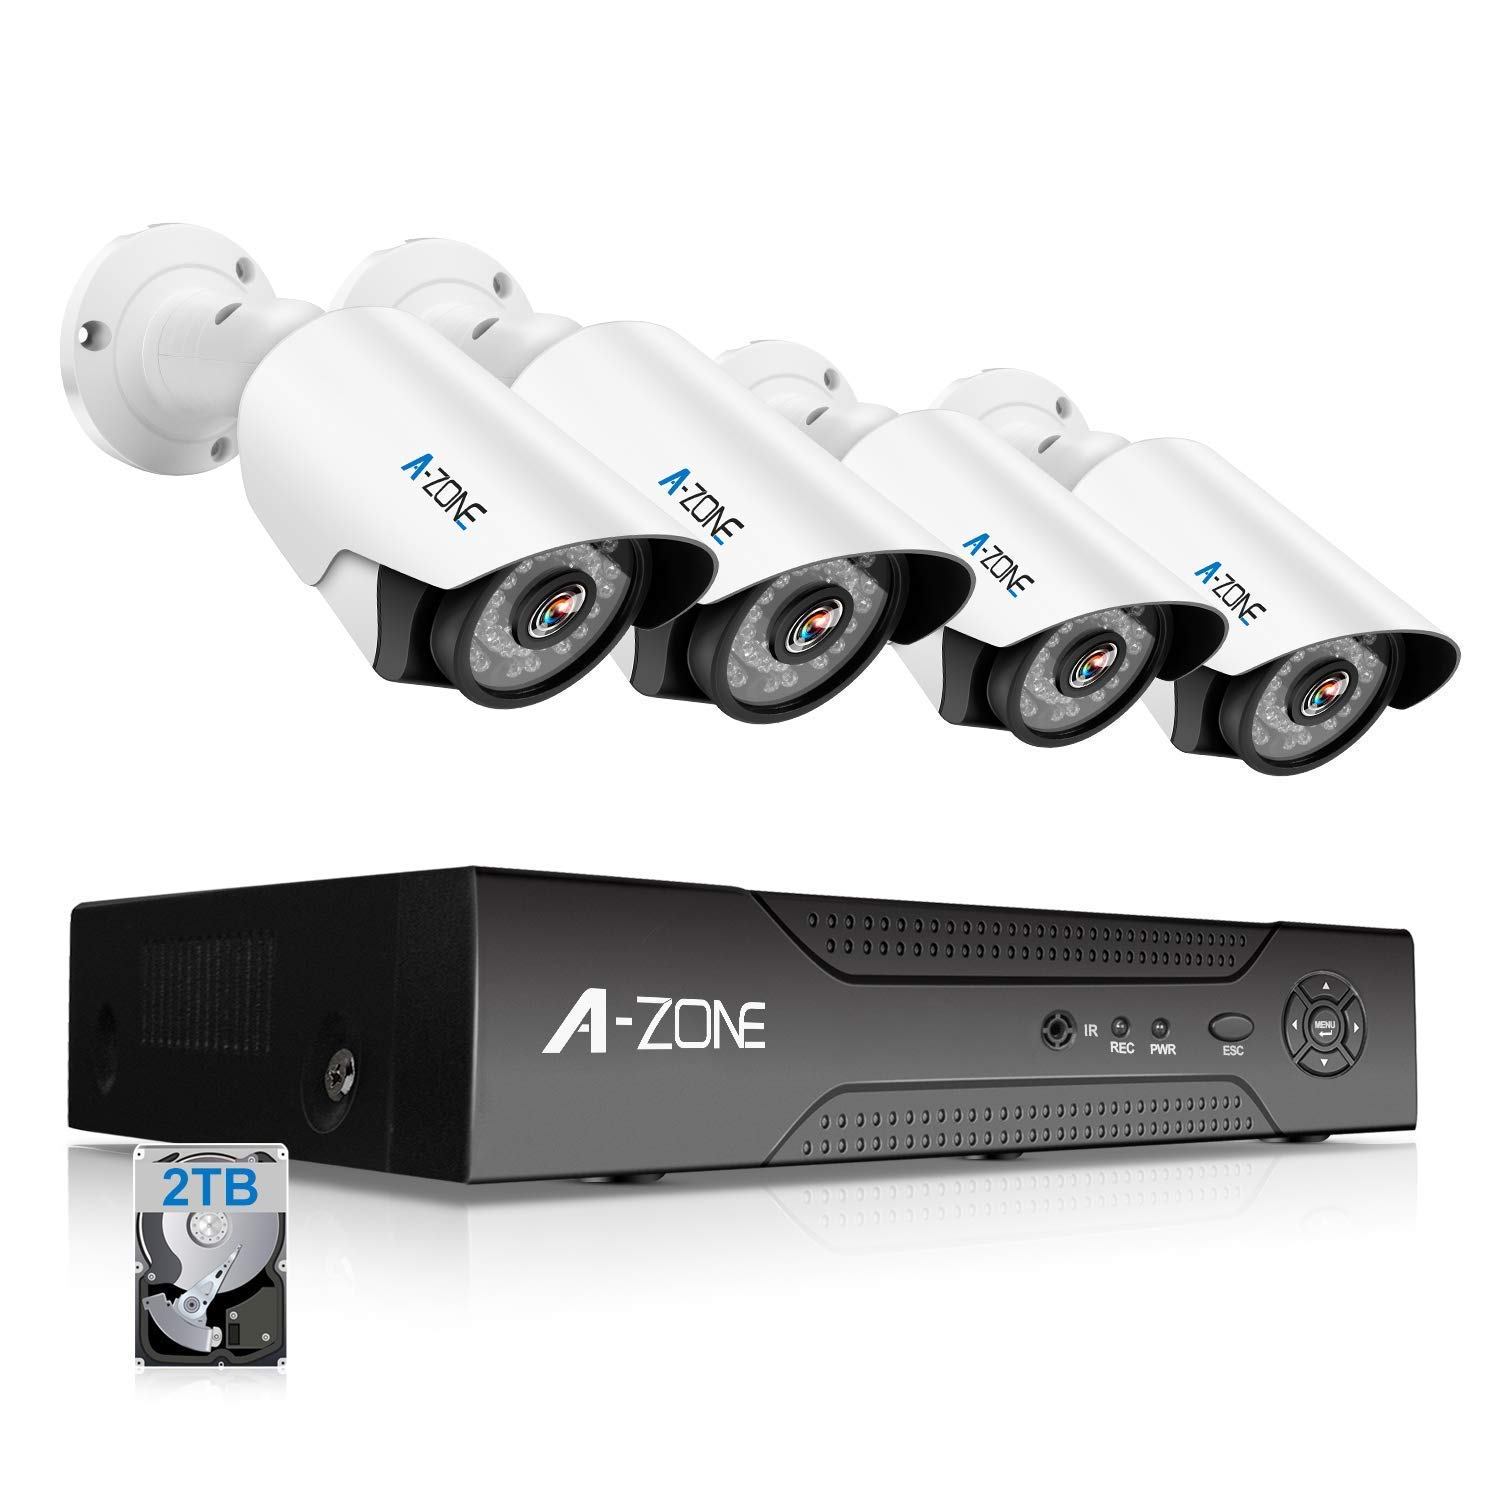 A-ZONE Security Camera System 4 Channel 1080P DVR 4 x 960P HD Waterproof Night Vision Indoor/Outdoor Home CCTV Video Wired Surveillance Kits, Customizable Motion Detection,Pre-installed 2TB HDD by A-ZONE